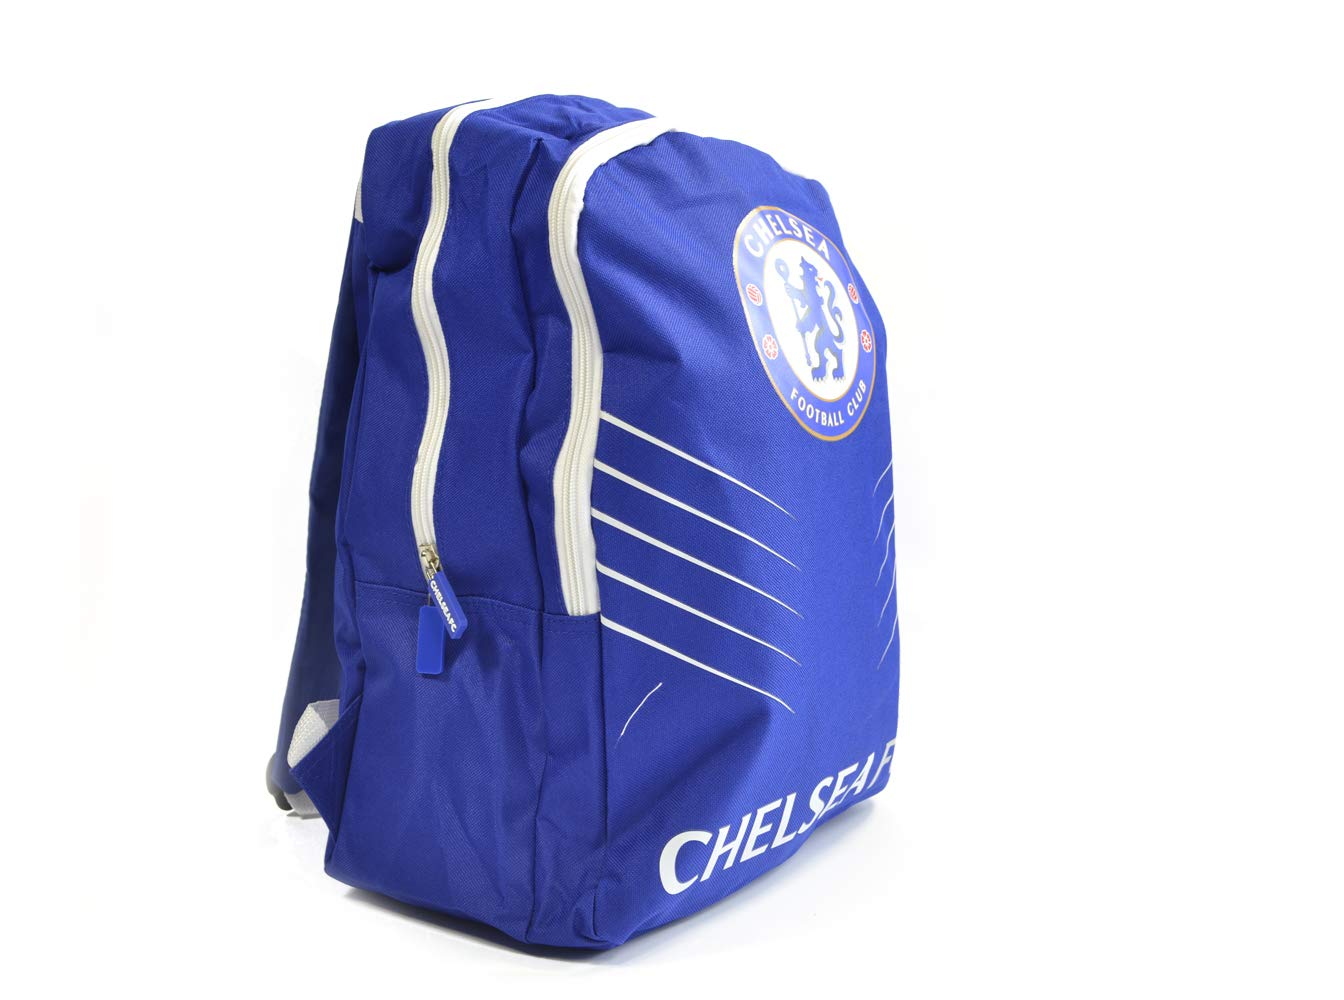 723d861c50 Chelsea FC Backpack Children s Luggage